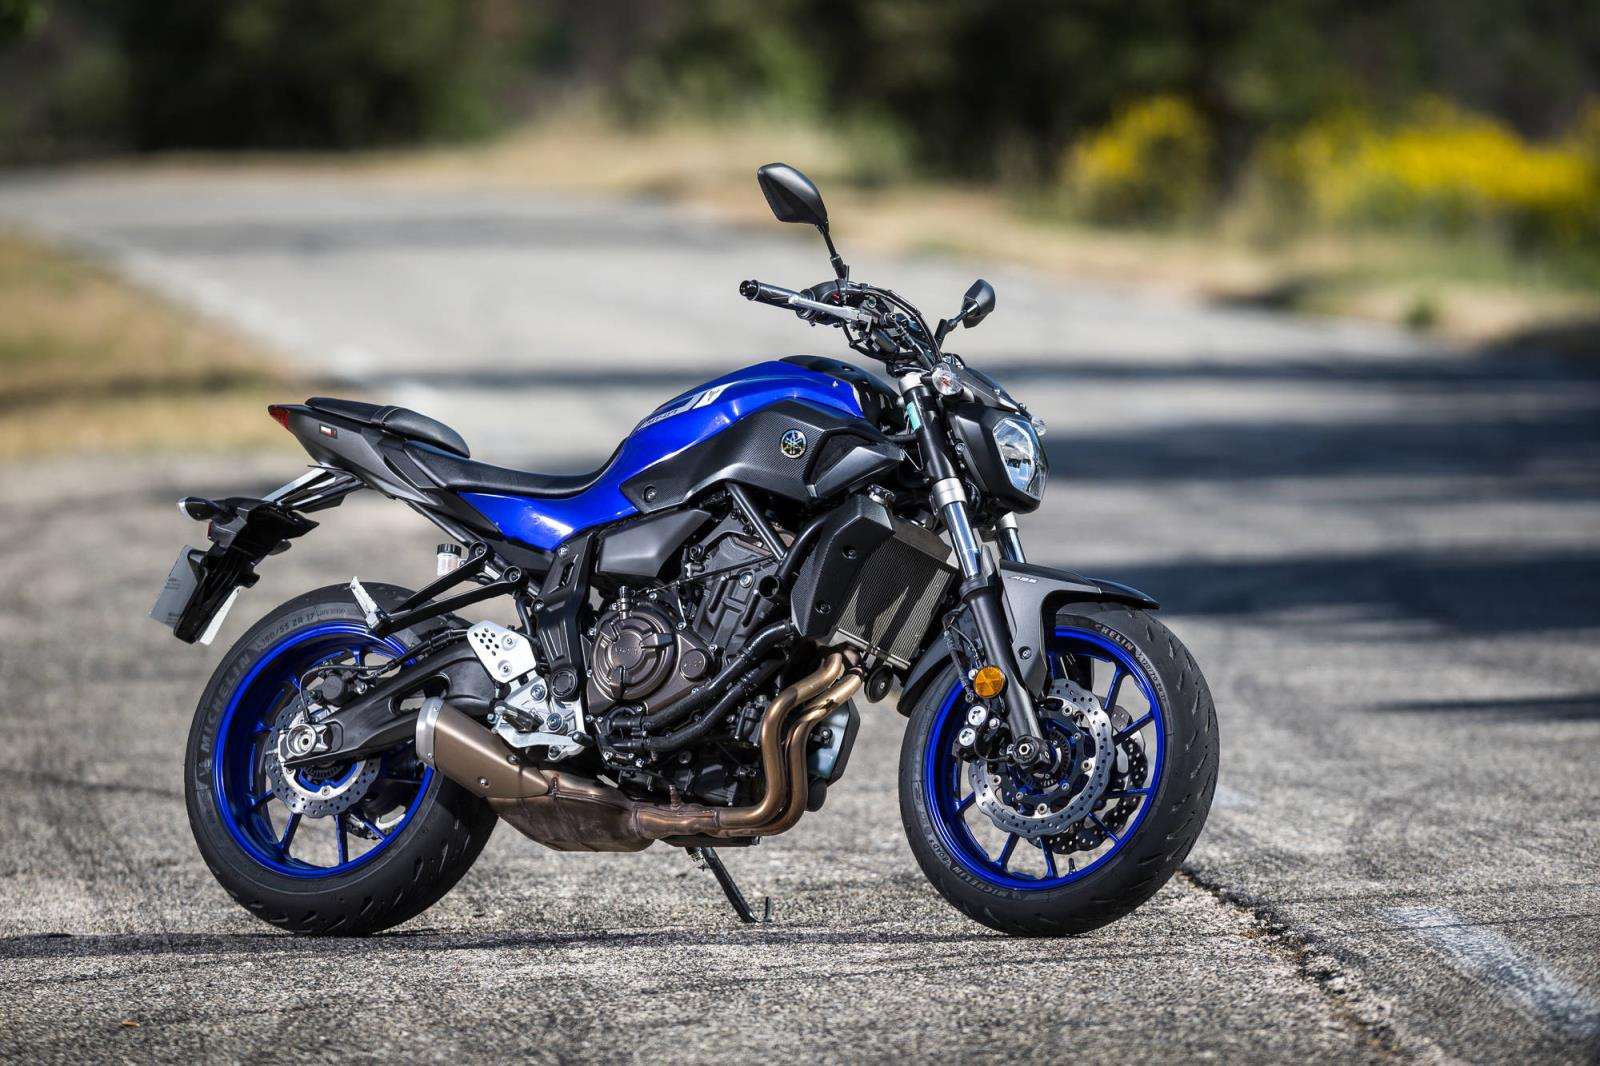 MICHELIN_Photo_Road5_Yamaha_MT07_013.jpg